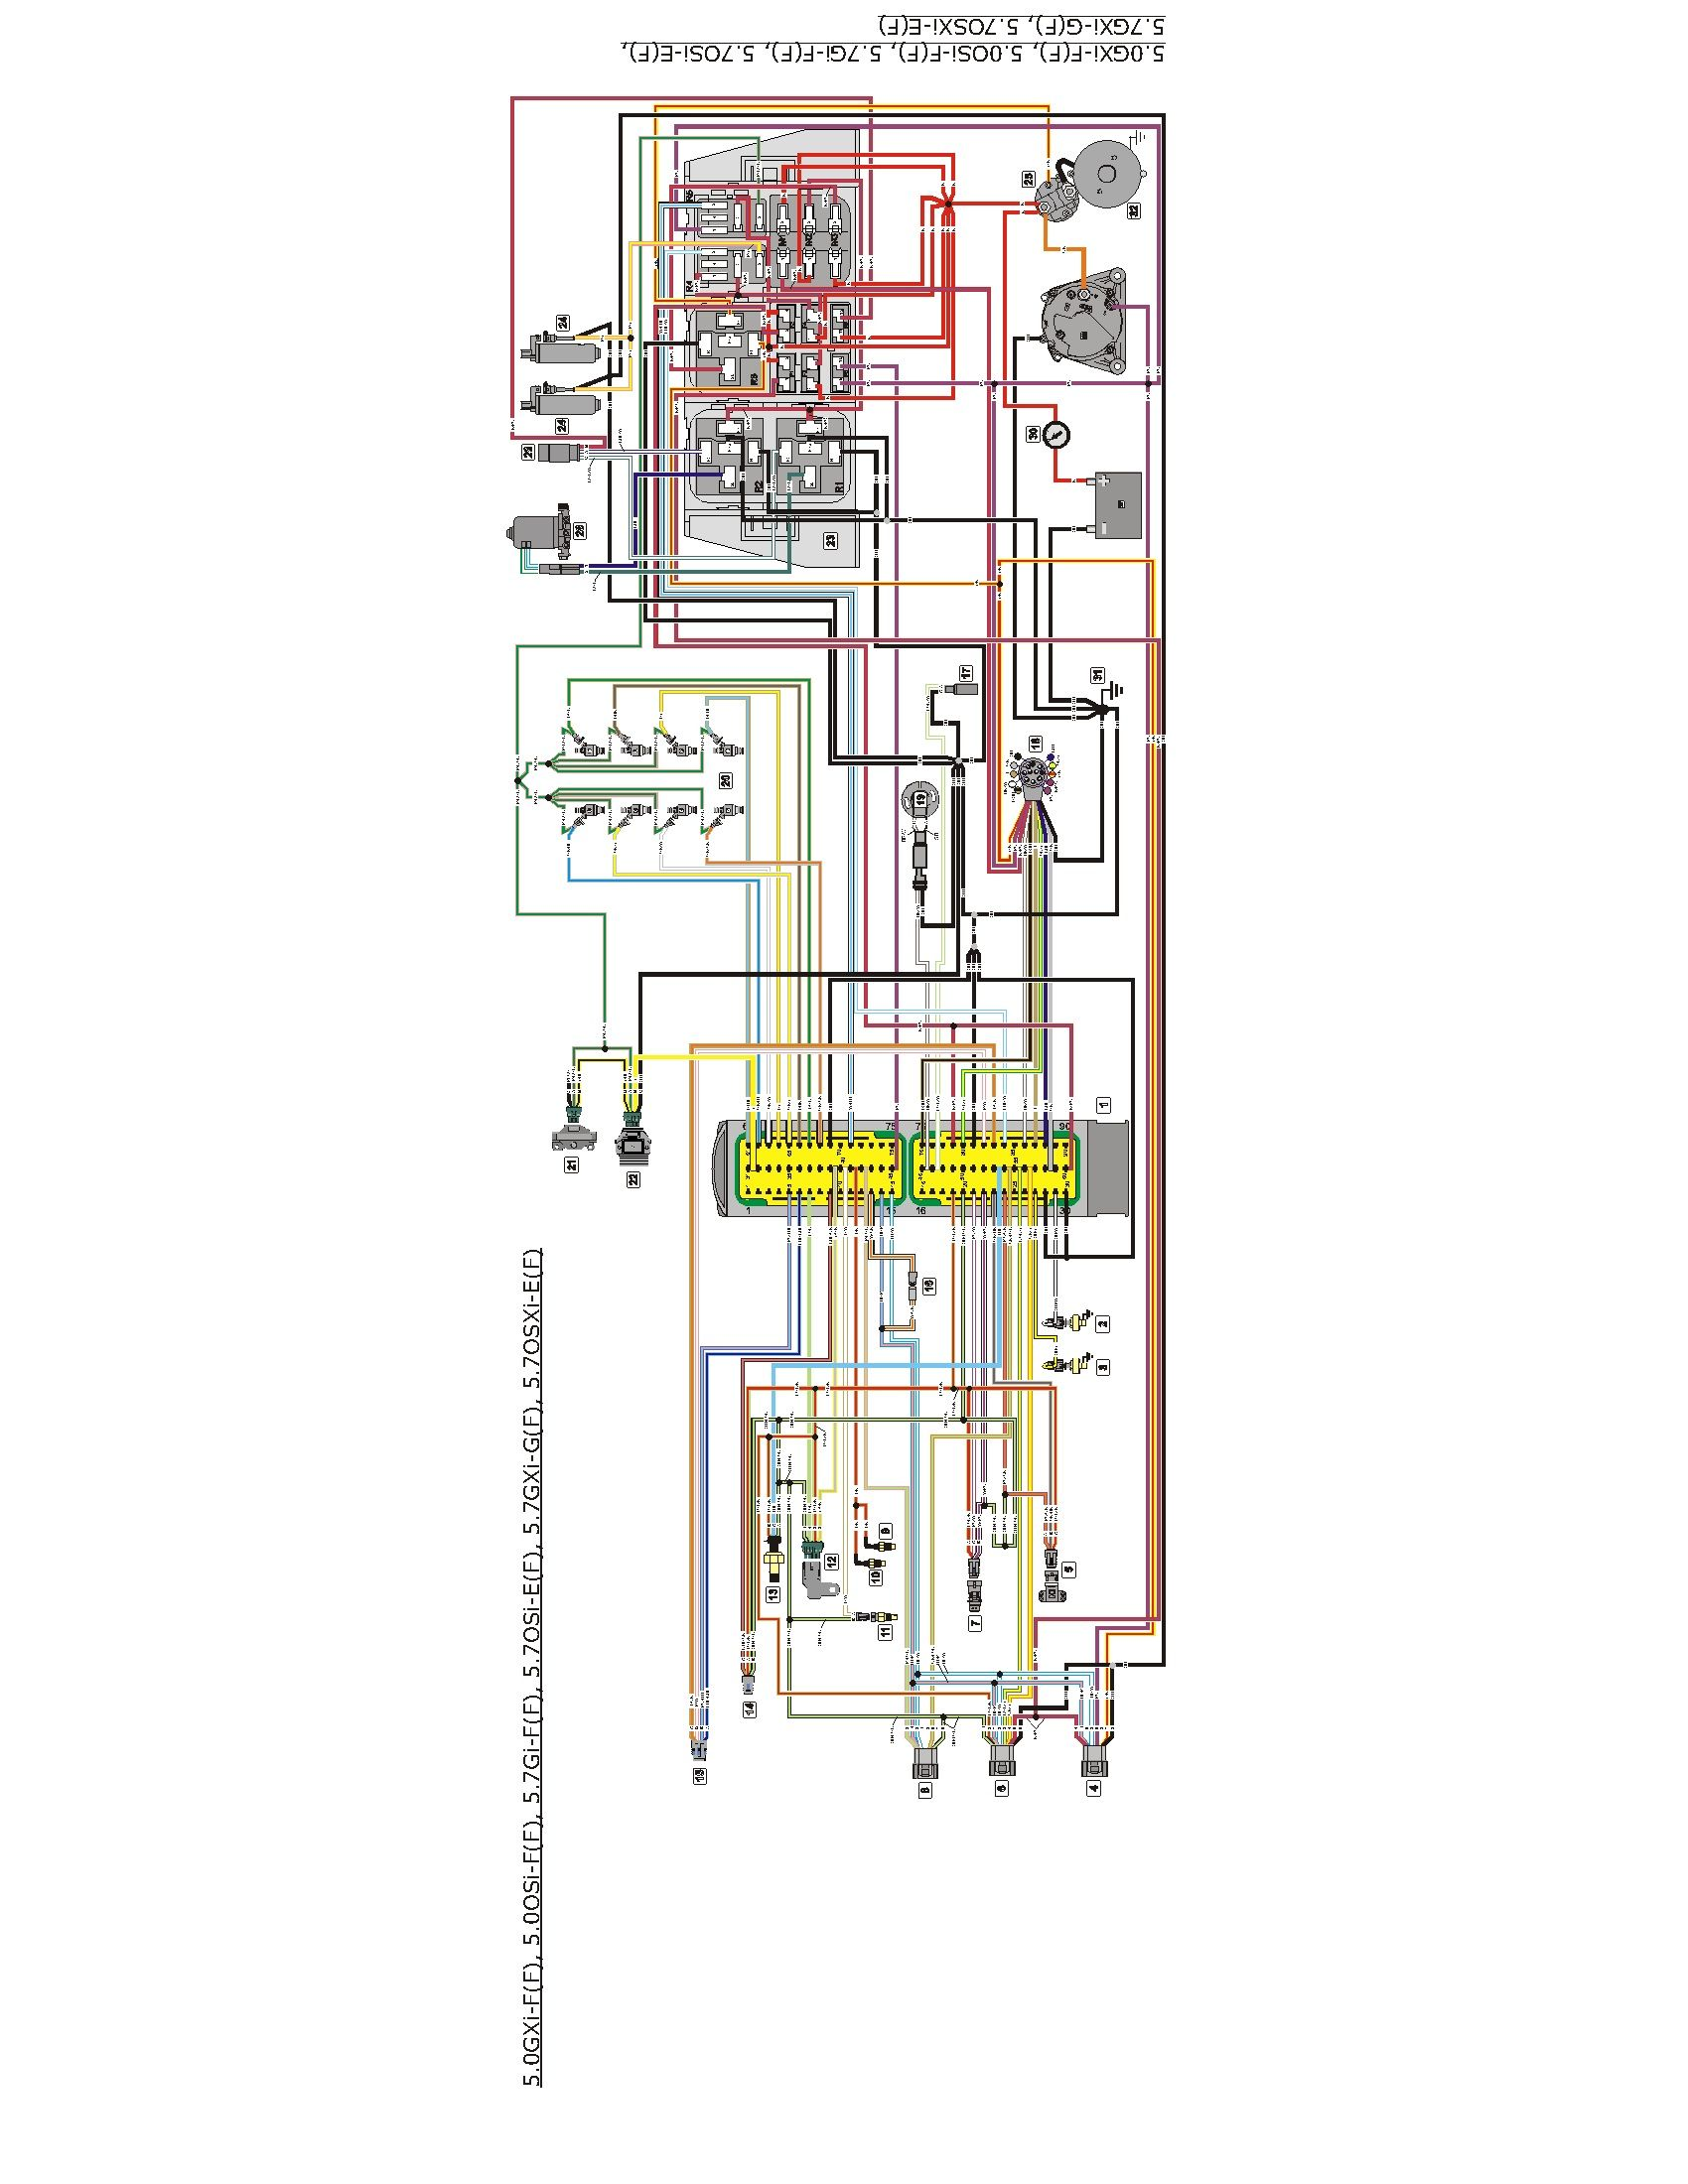 medium resolution of volvo penta 5 7 engine wiring diagram